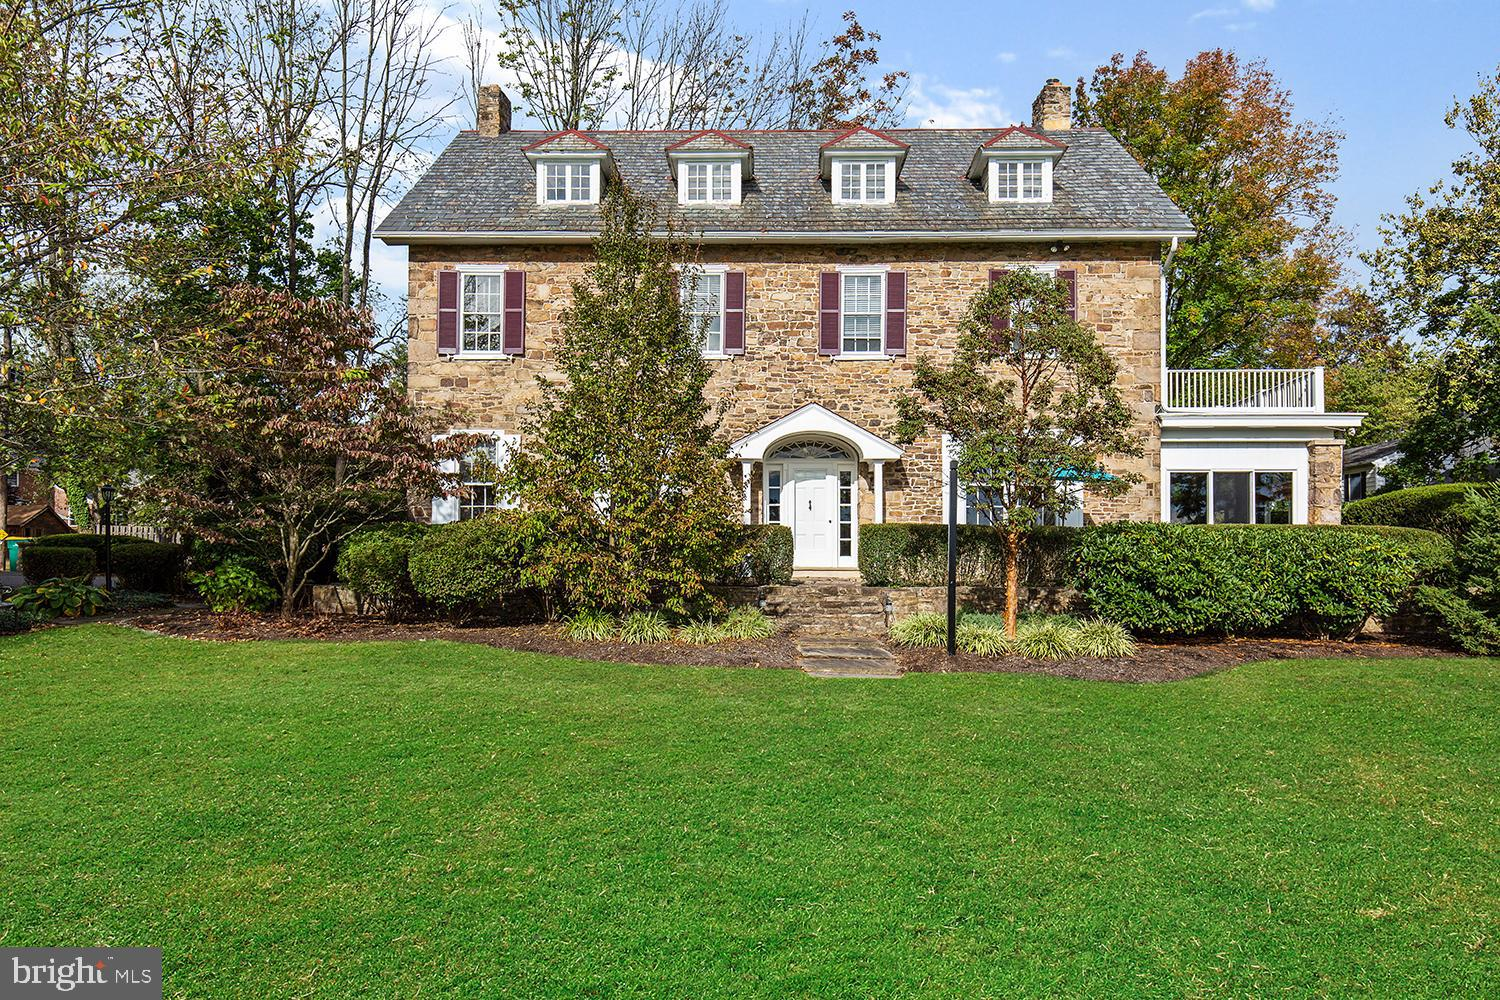 16 GOLF VIEW ROAD, DOYLESTOWN, PA 18901